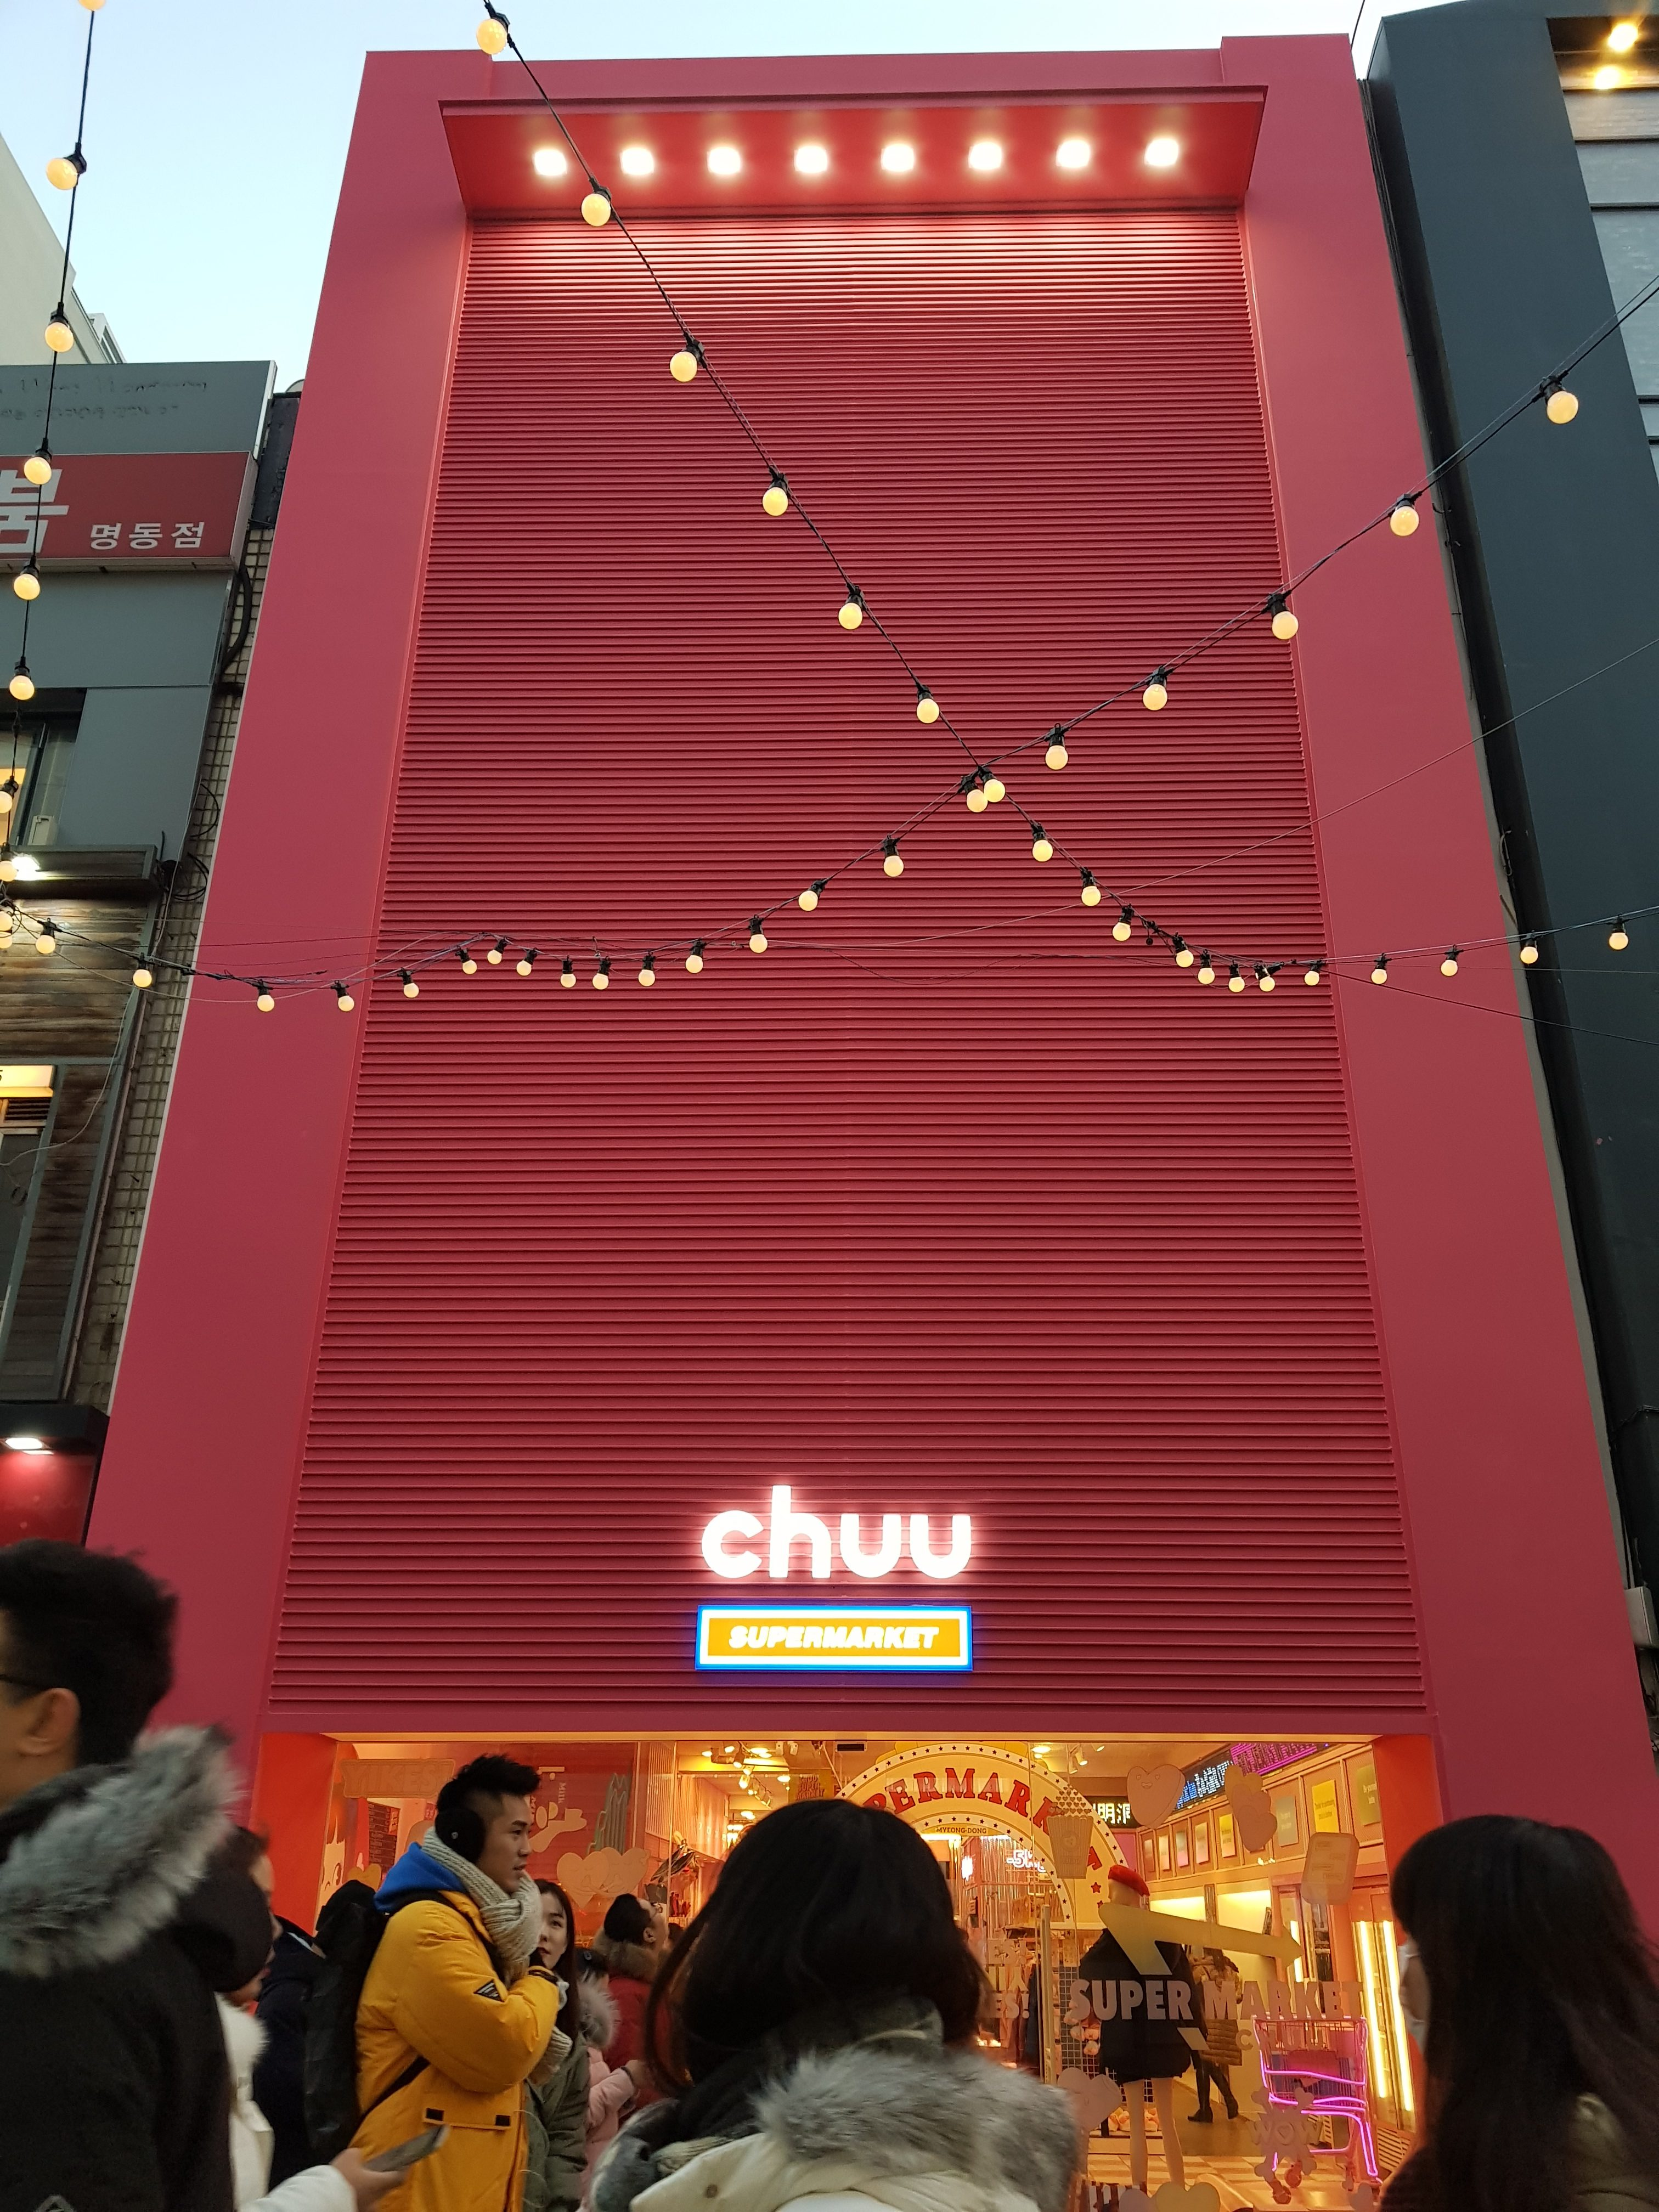 Online brand CHUU Myeong-Dong Flagship Store